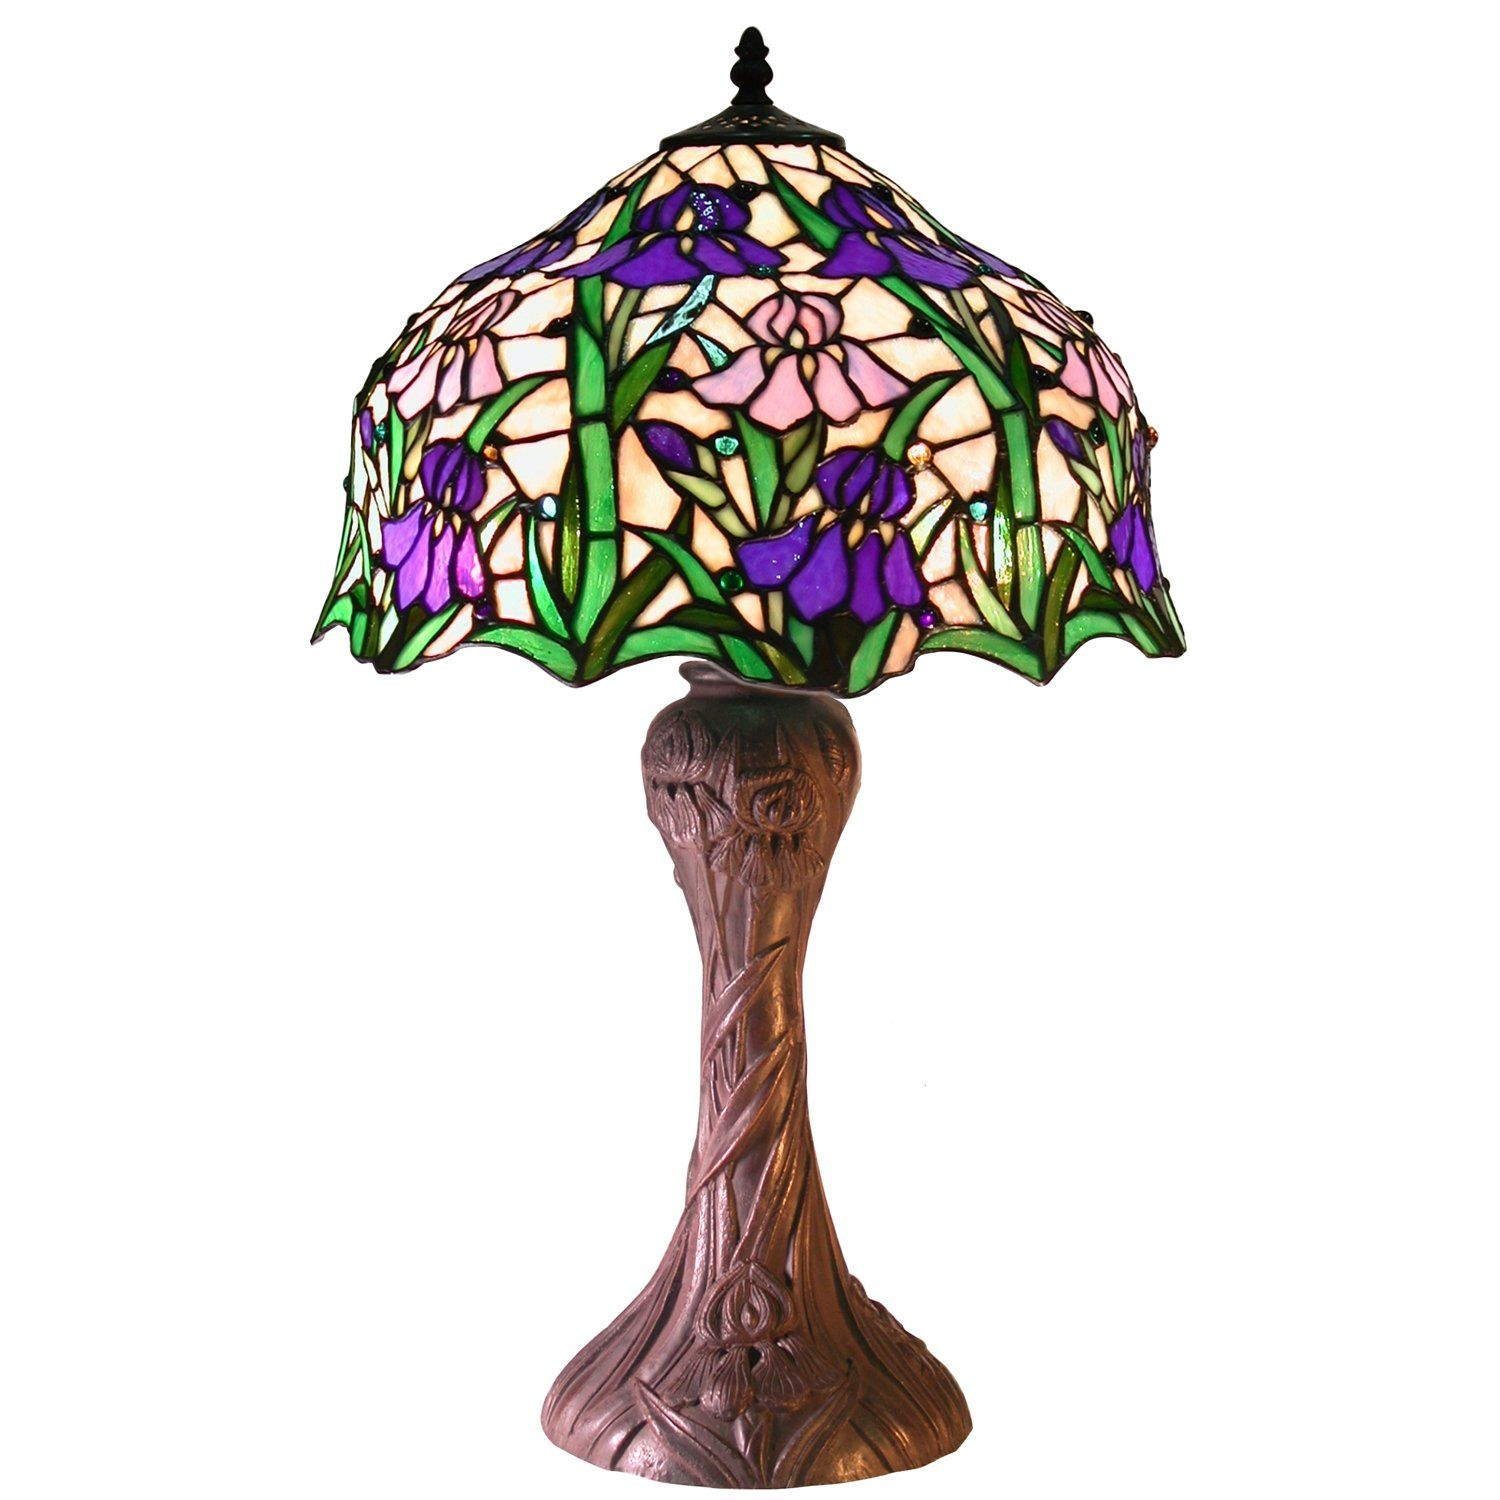 Purple Table Lamp Pleasing Tiffanystyle Iris Table Lamp  Products  Pinterest  Iris Tiffany Inspiration Design